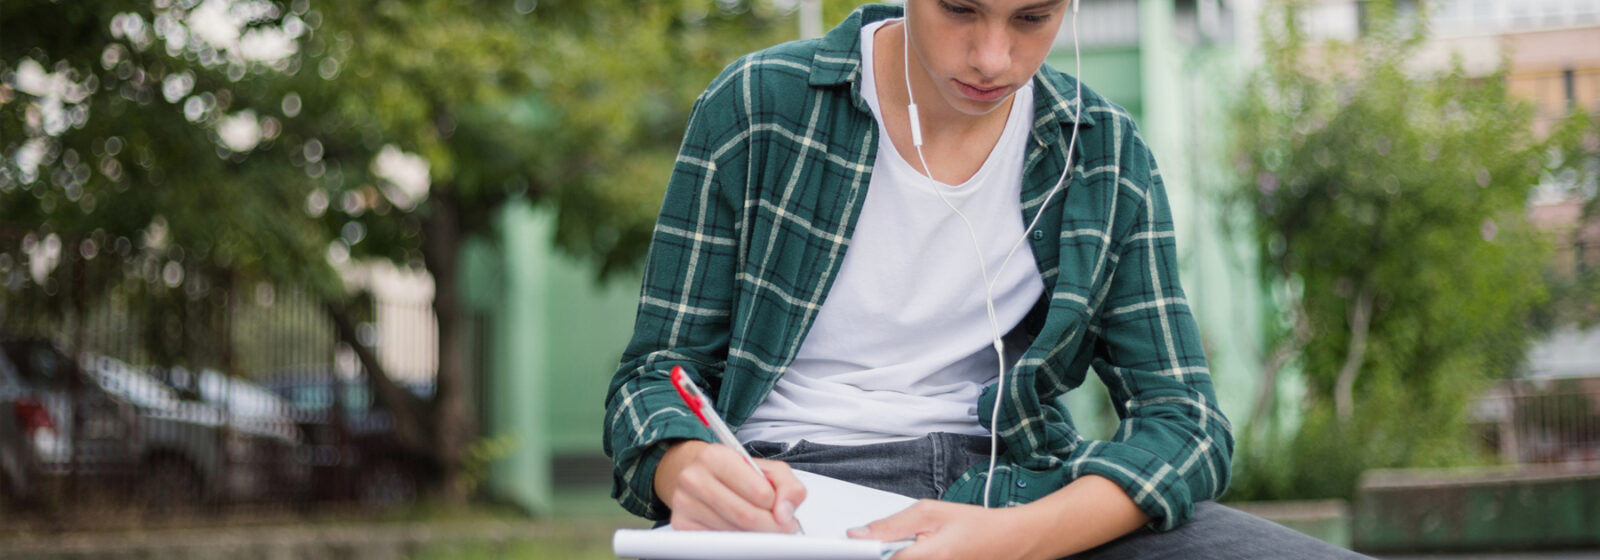 Teenage boy writes in a notebook while listening to music